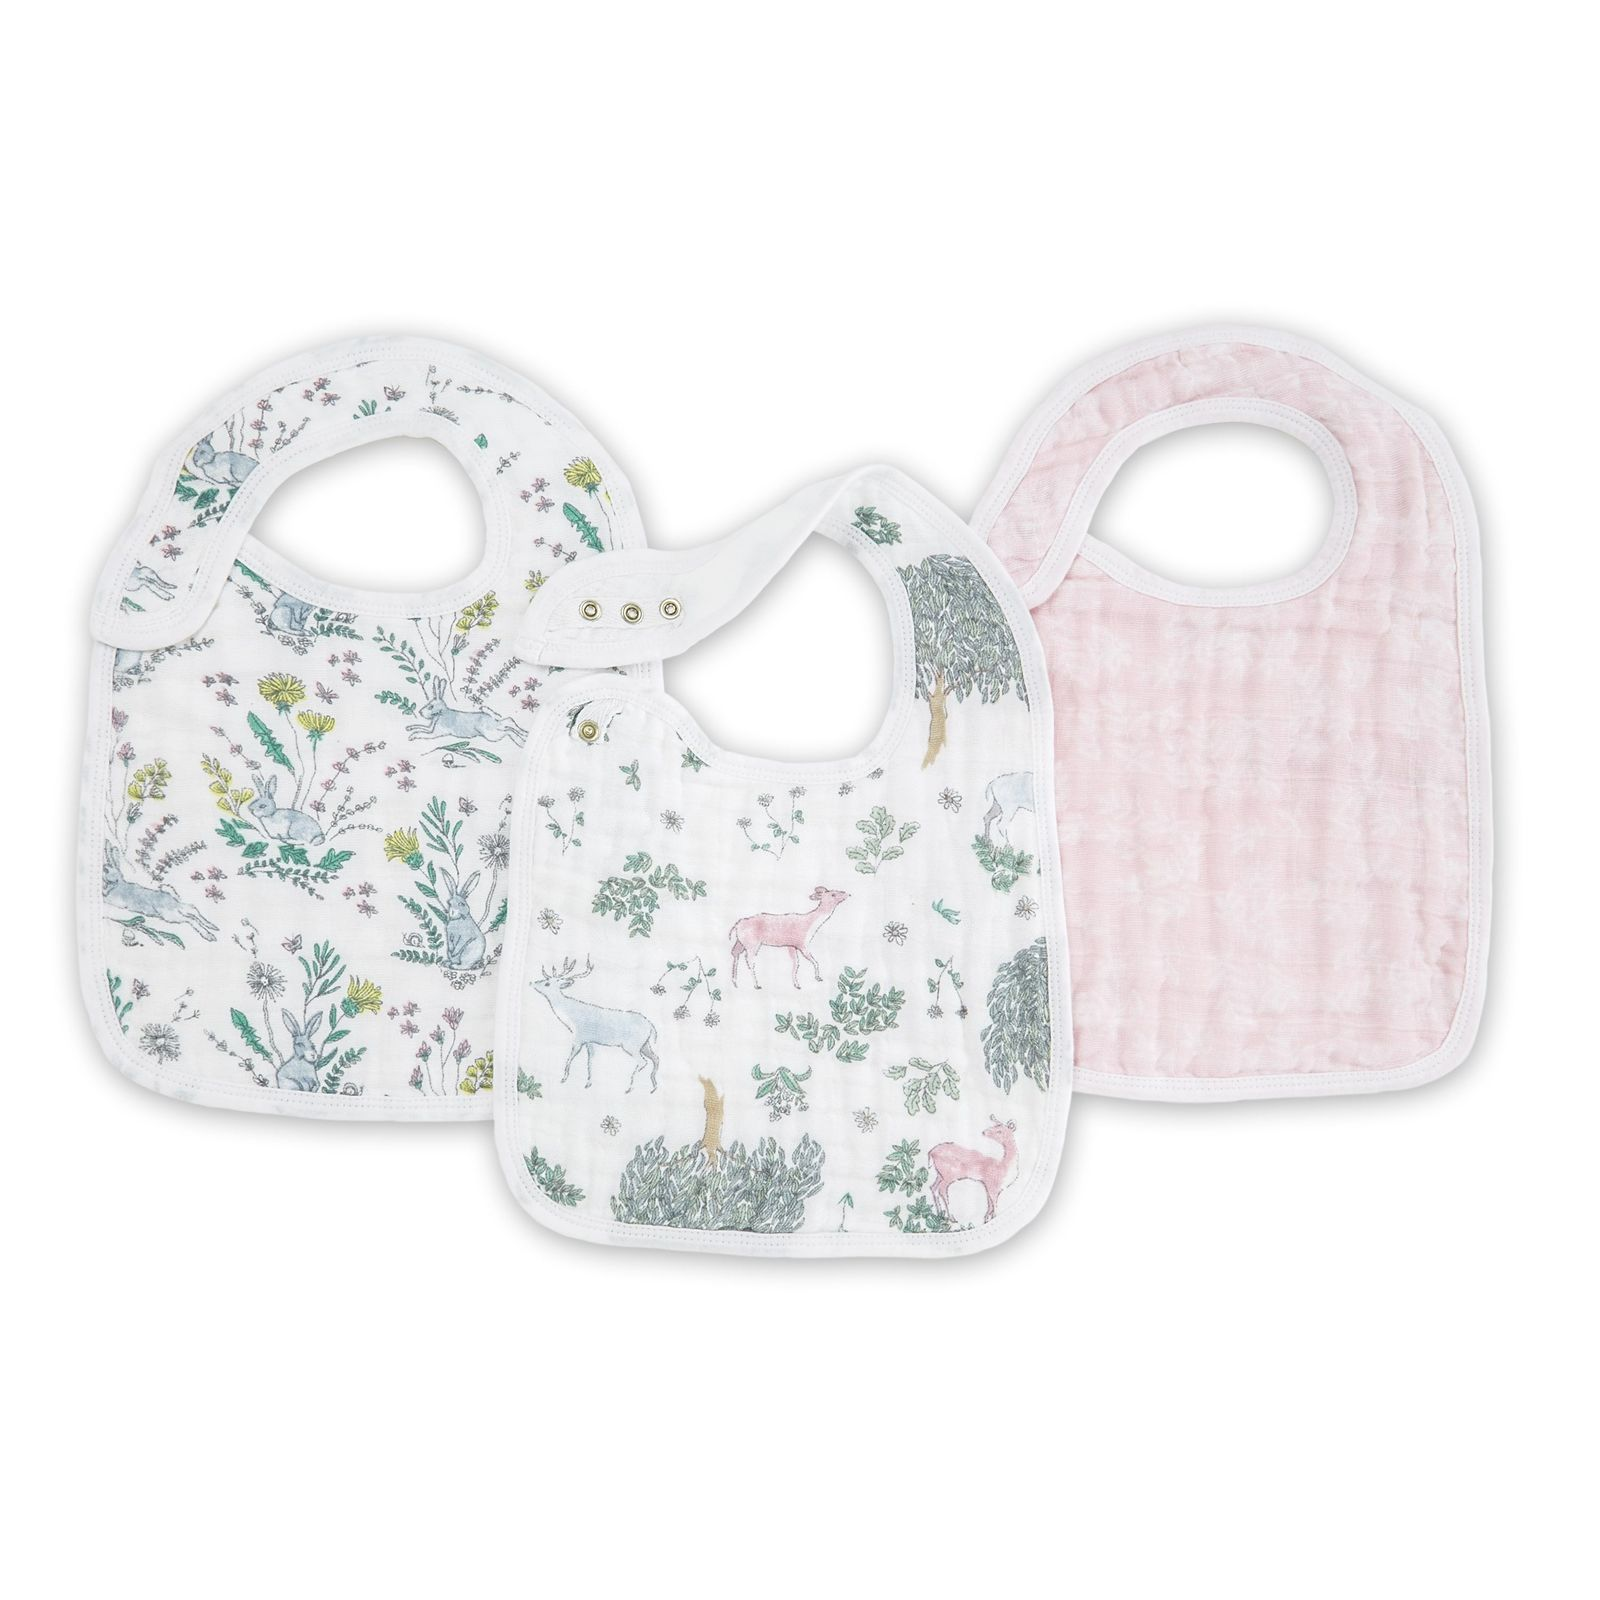 Aden + Anais: Classic Snap Bib - Forest Fantasy (3 Pack) image